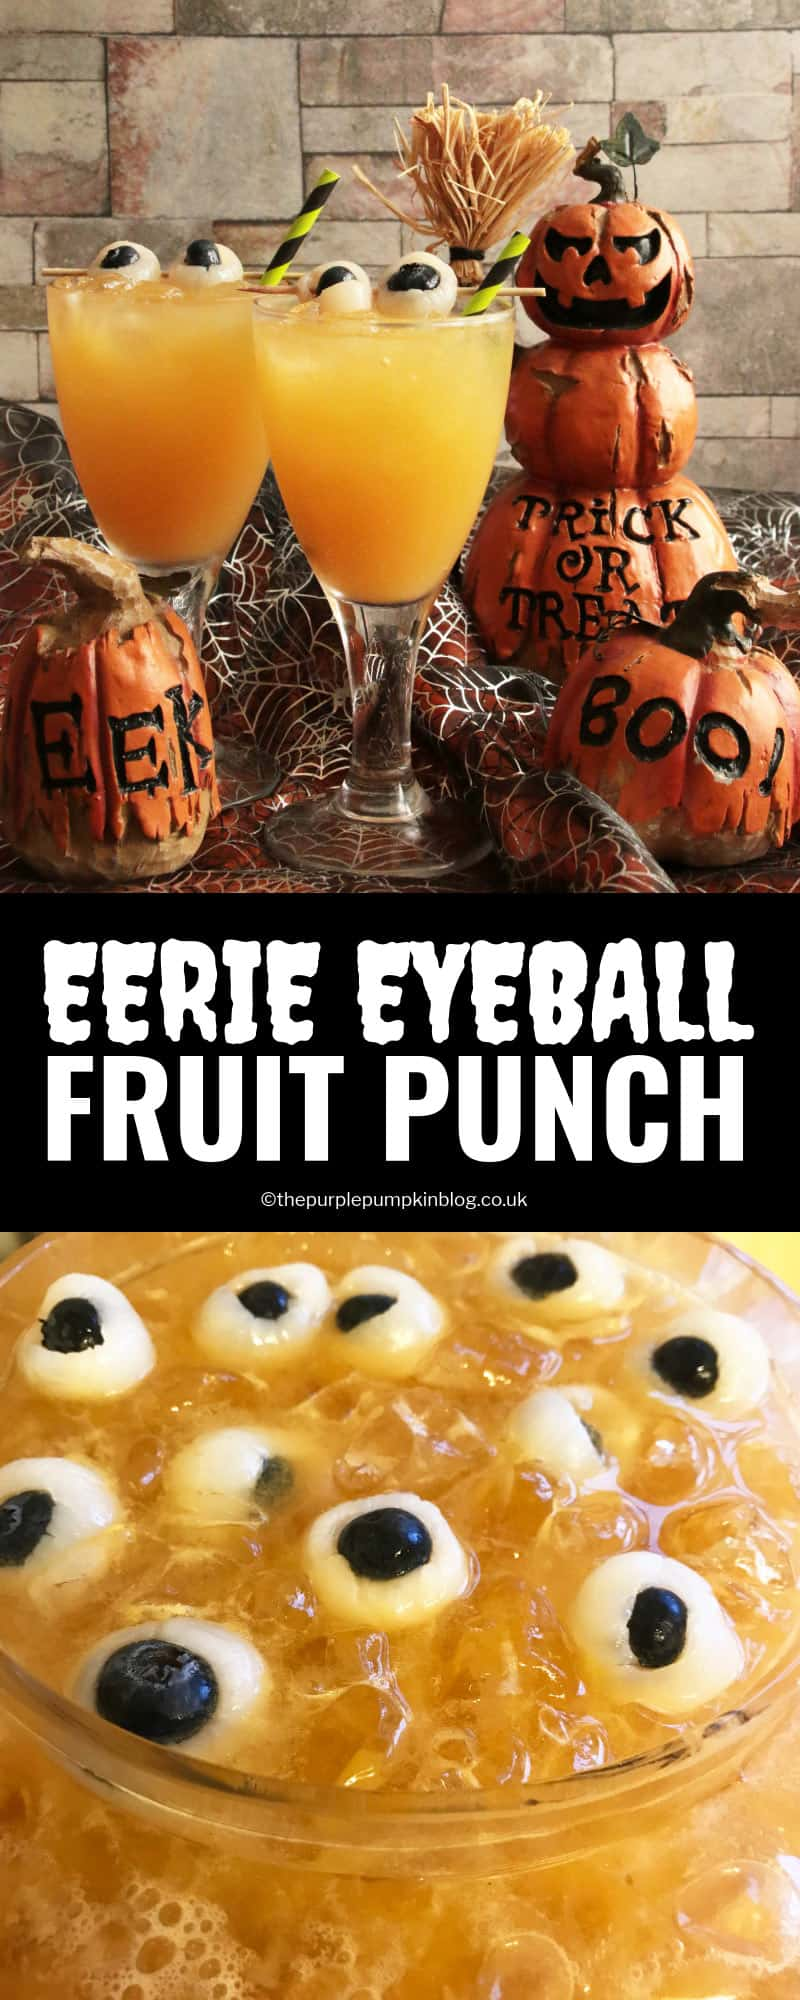 """This Eerie Eyeball Fruit Punch is a great drink to serve at a Halloween Party. It can be kept non-alcoholic for non-drinkers and kids, or laced with booze for the drinkers. The floating""""eyeballs"""" give it that eerie edge!"""